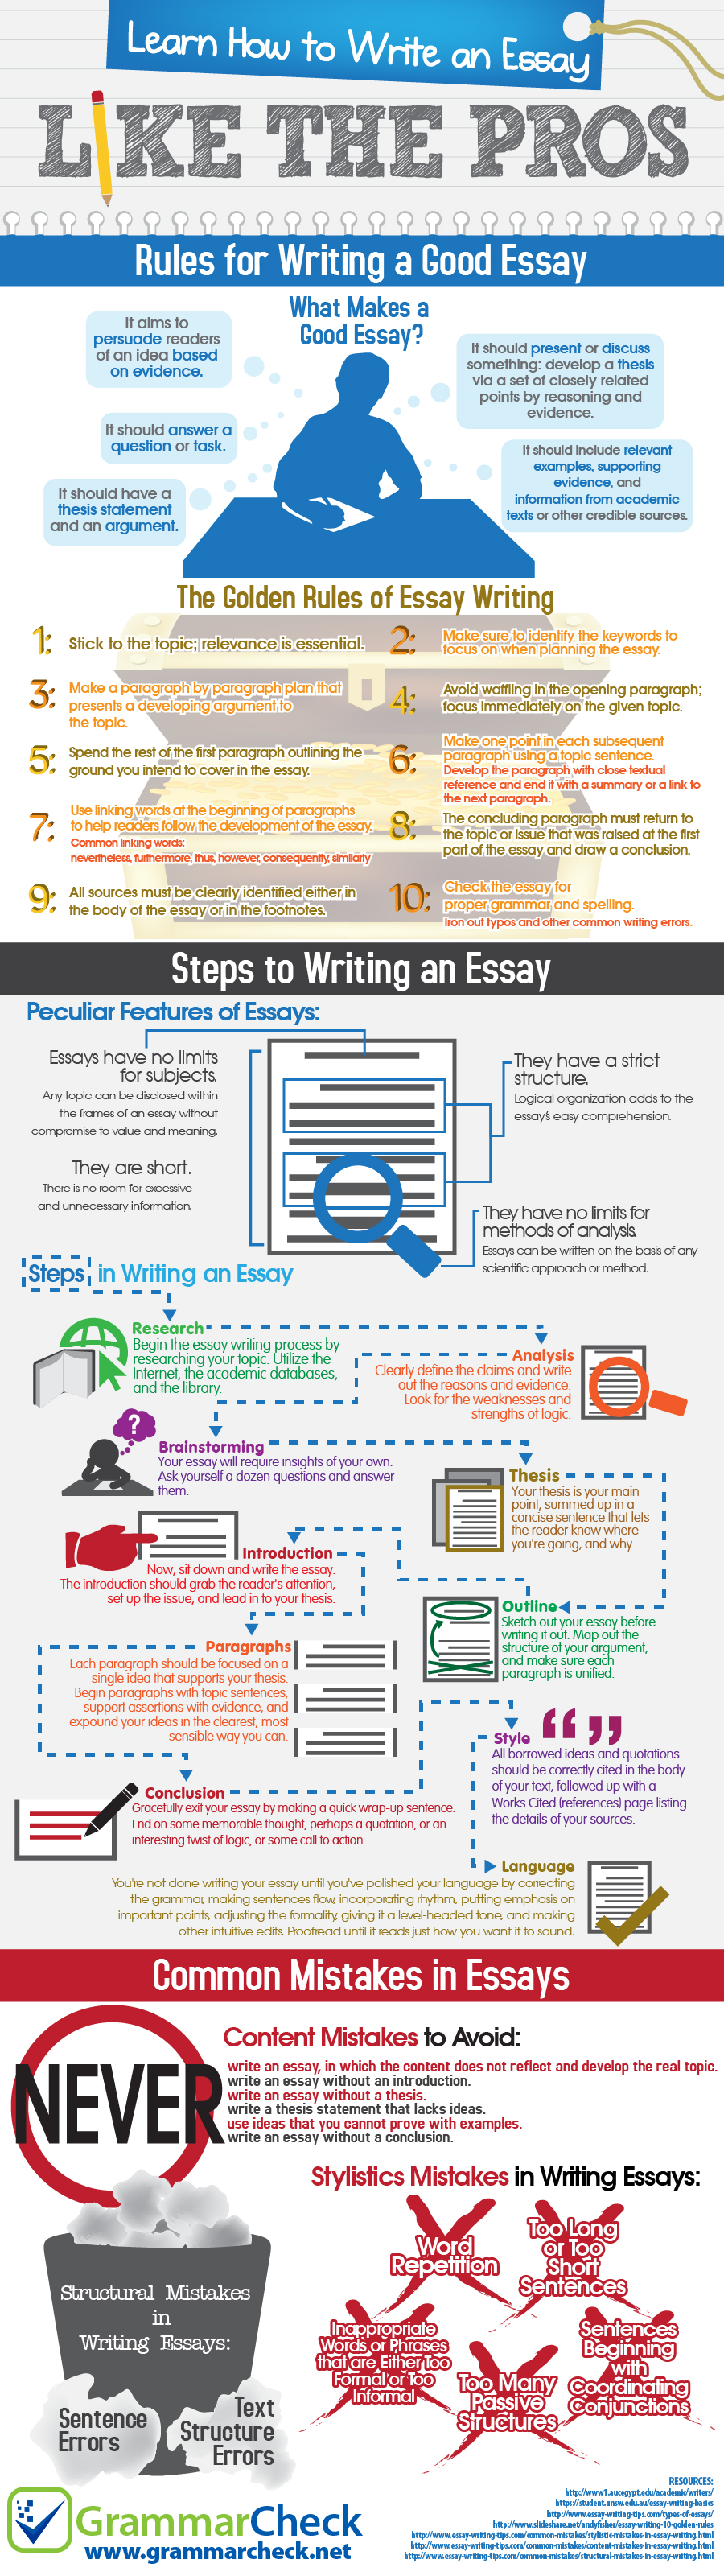 essay on water pollution essay review service college application  essay review service college application essay review service law school essay review service best do my water pollution